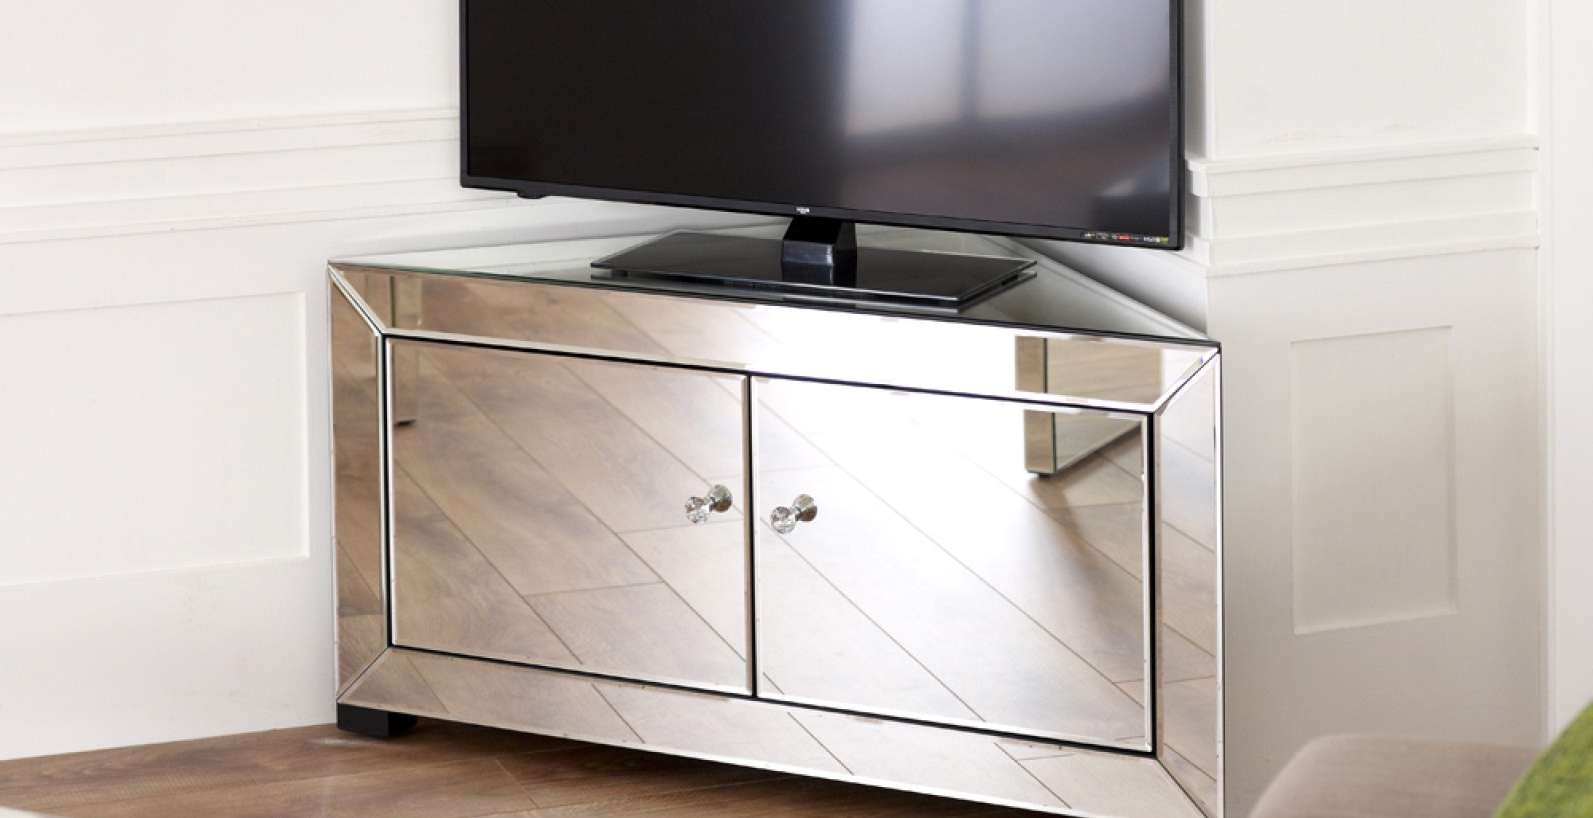 Tv : Breathtaking Corner Oak Tv Cabinets For Flat Screens With For Oak Tv Cabinets For Flat Screens With Doors (View 9 of 20)